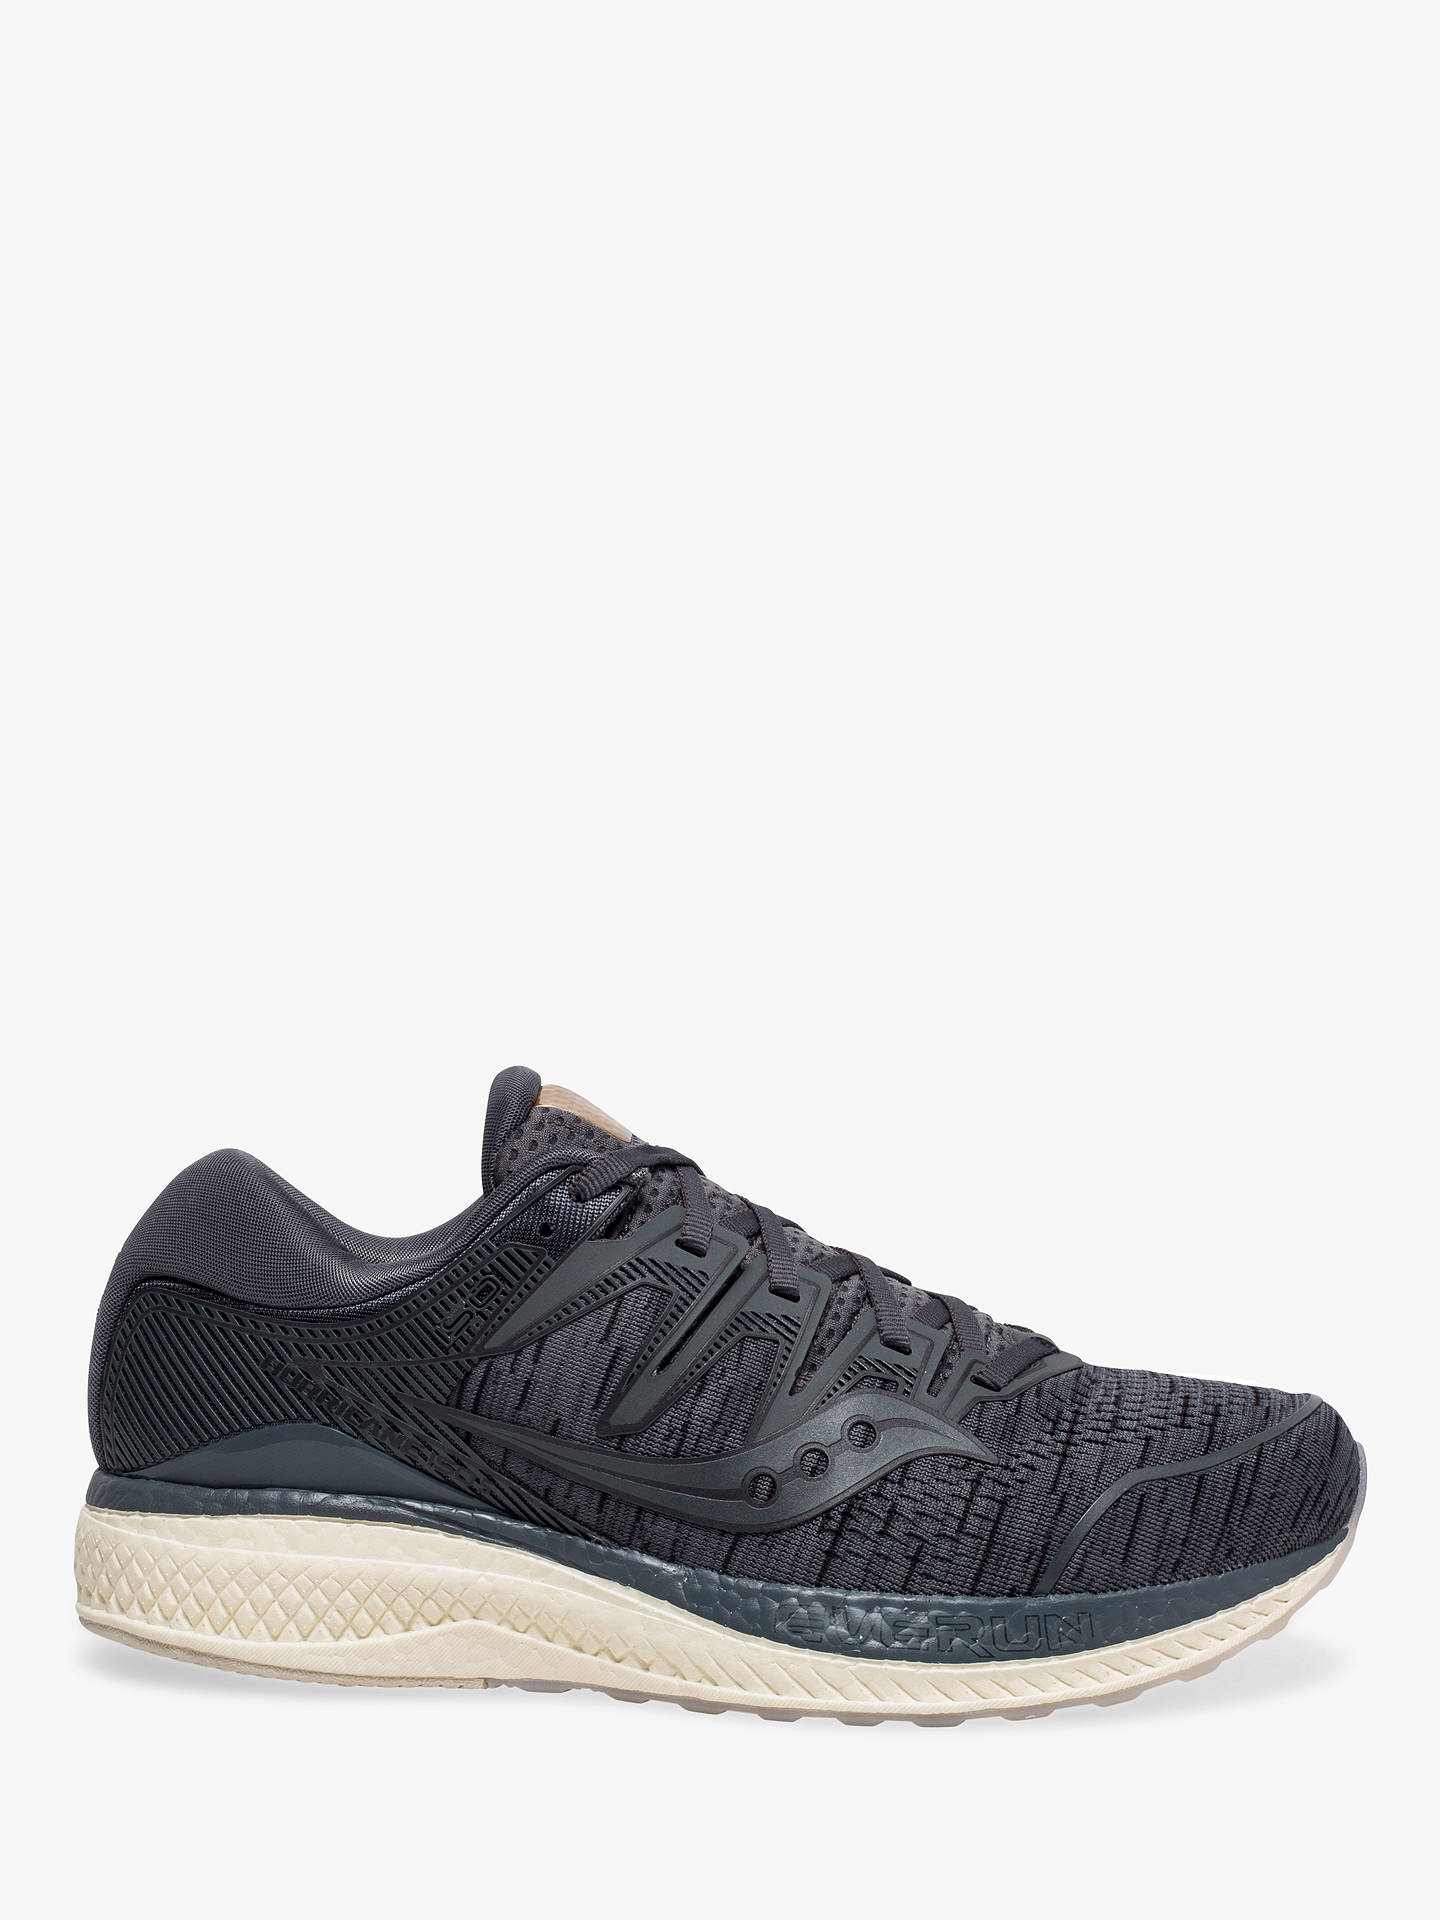 f25efefe Buy Saucony Hurricane ISO 5 Men's Running Shoes, Grey Shade, 11 Online at  johnlewis ...